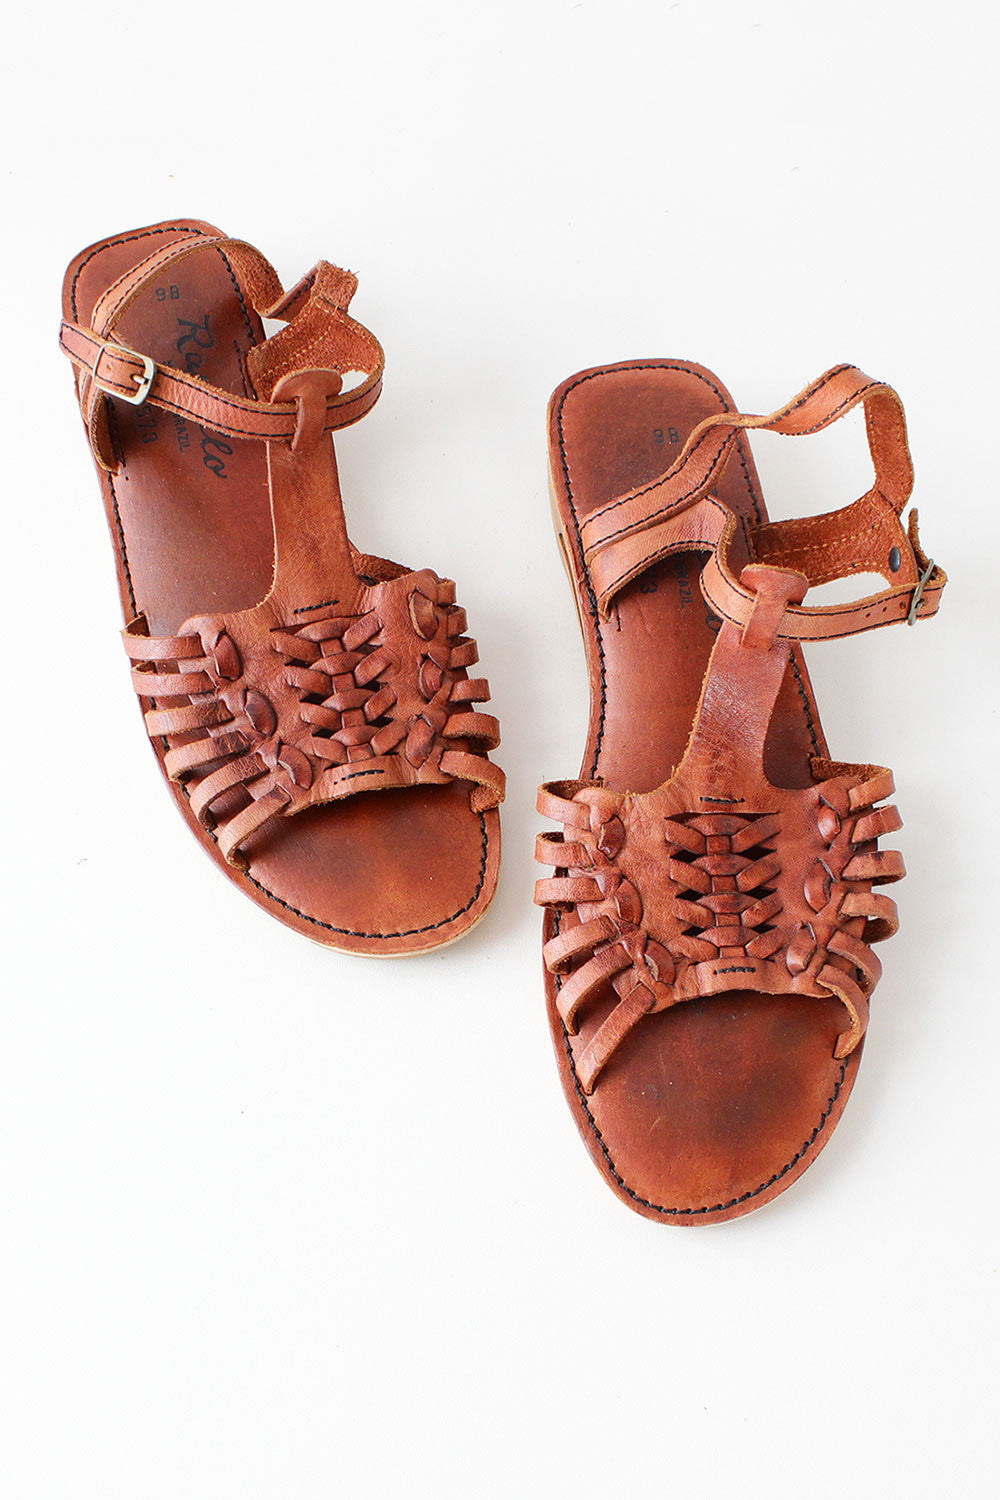 12a950f11cc 70s Rapallo Cutout Wood Sandals 8 1 2 – OMNIA